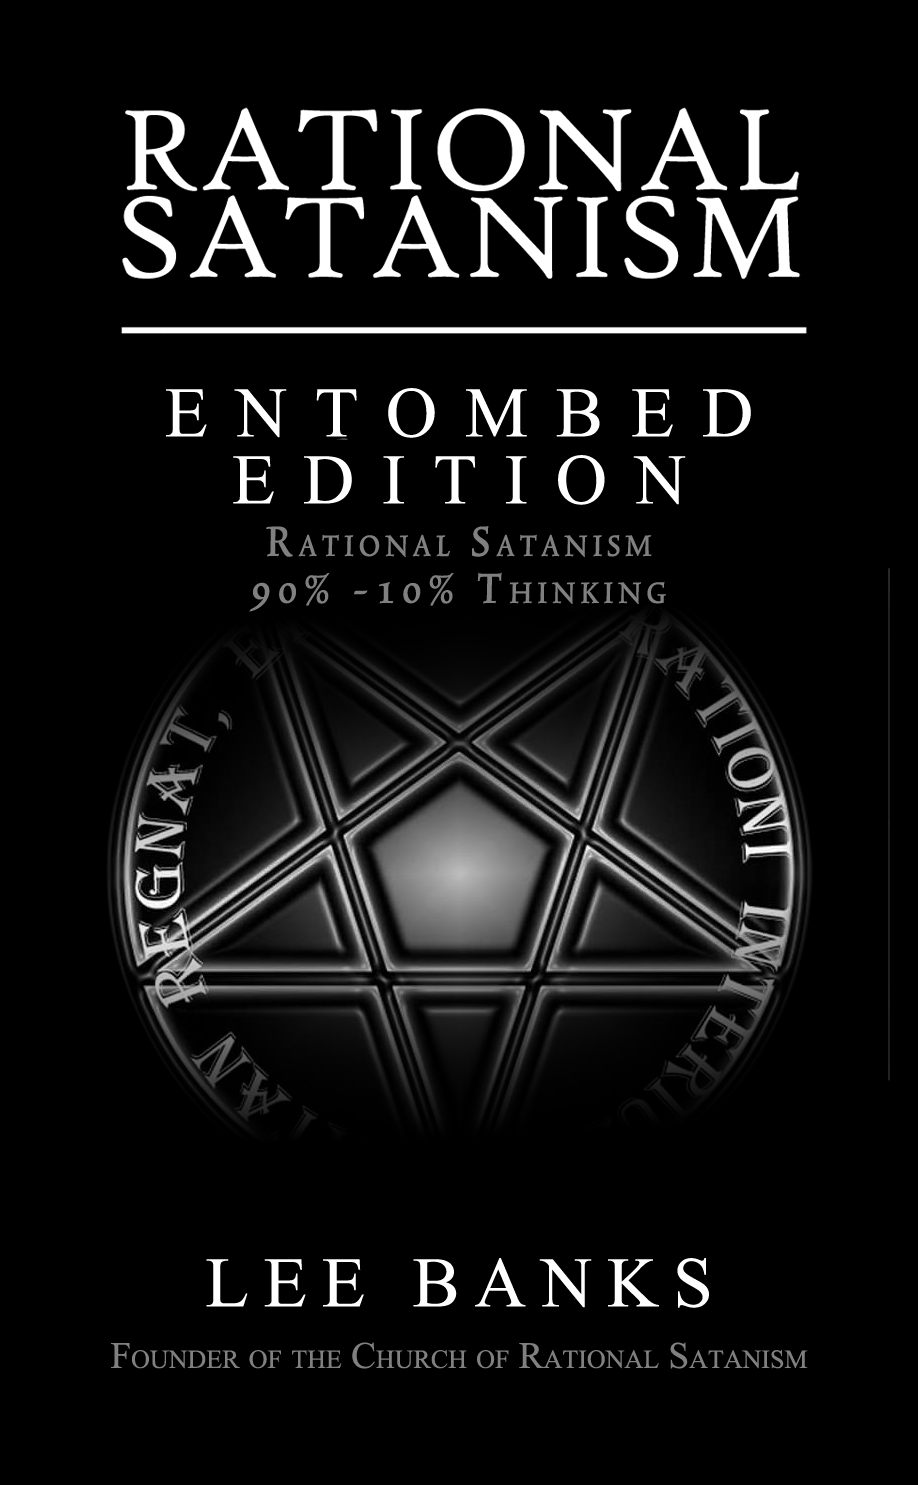 Entombed Edition